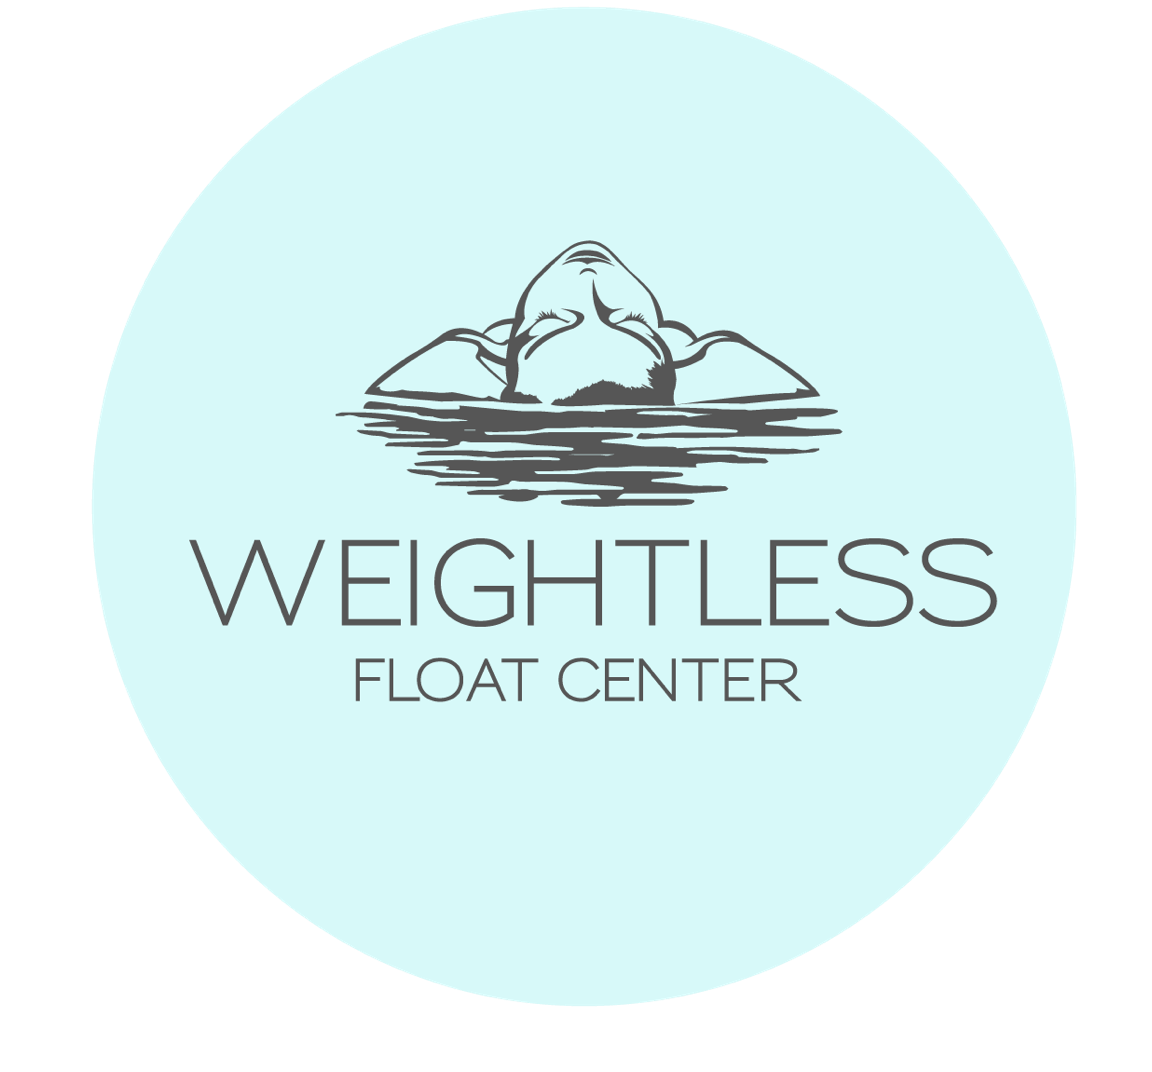 weightless.PNG